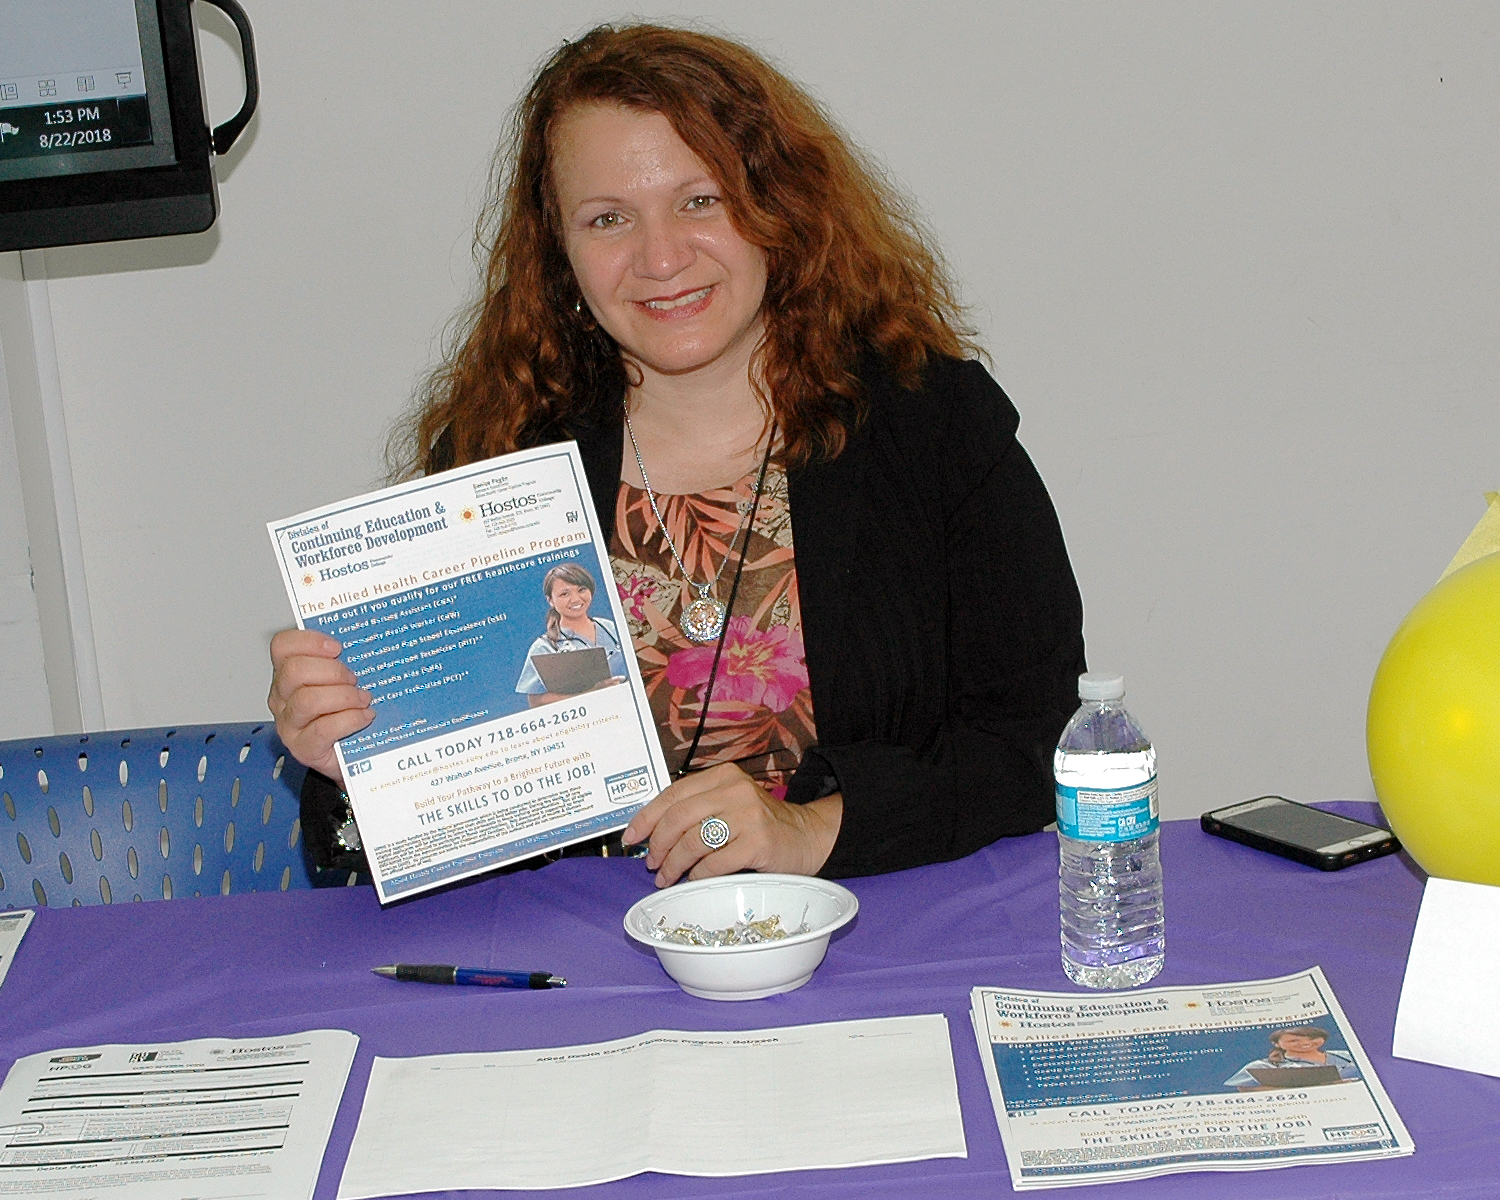 One of the job fair interviewers